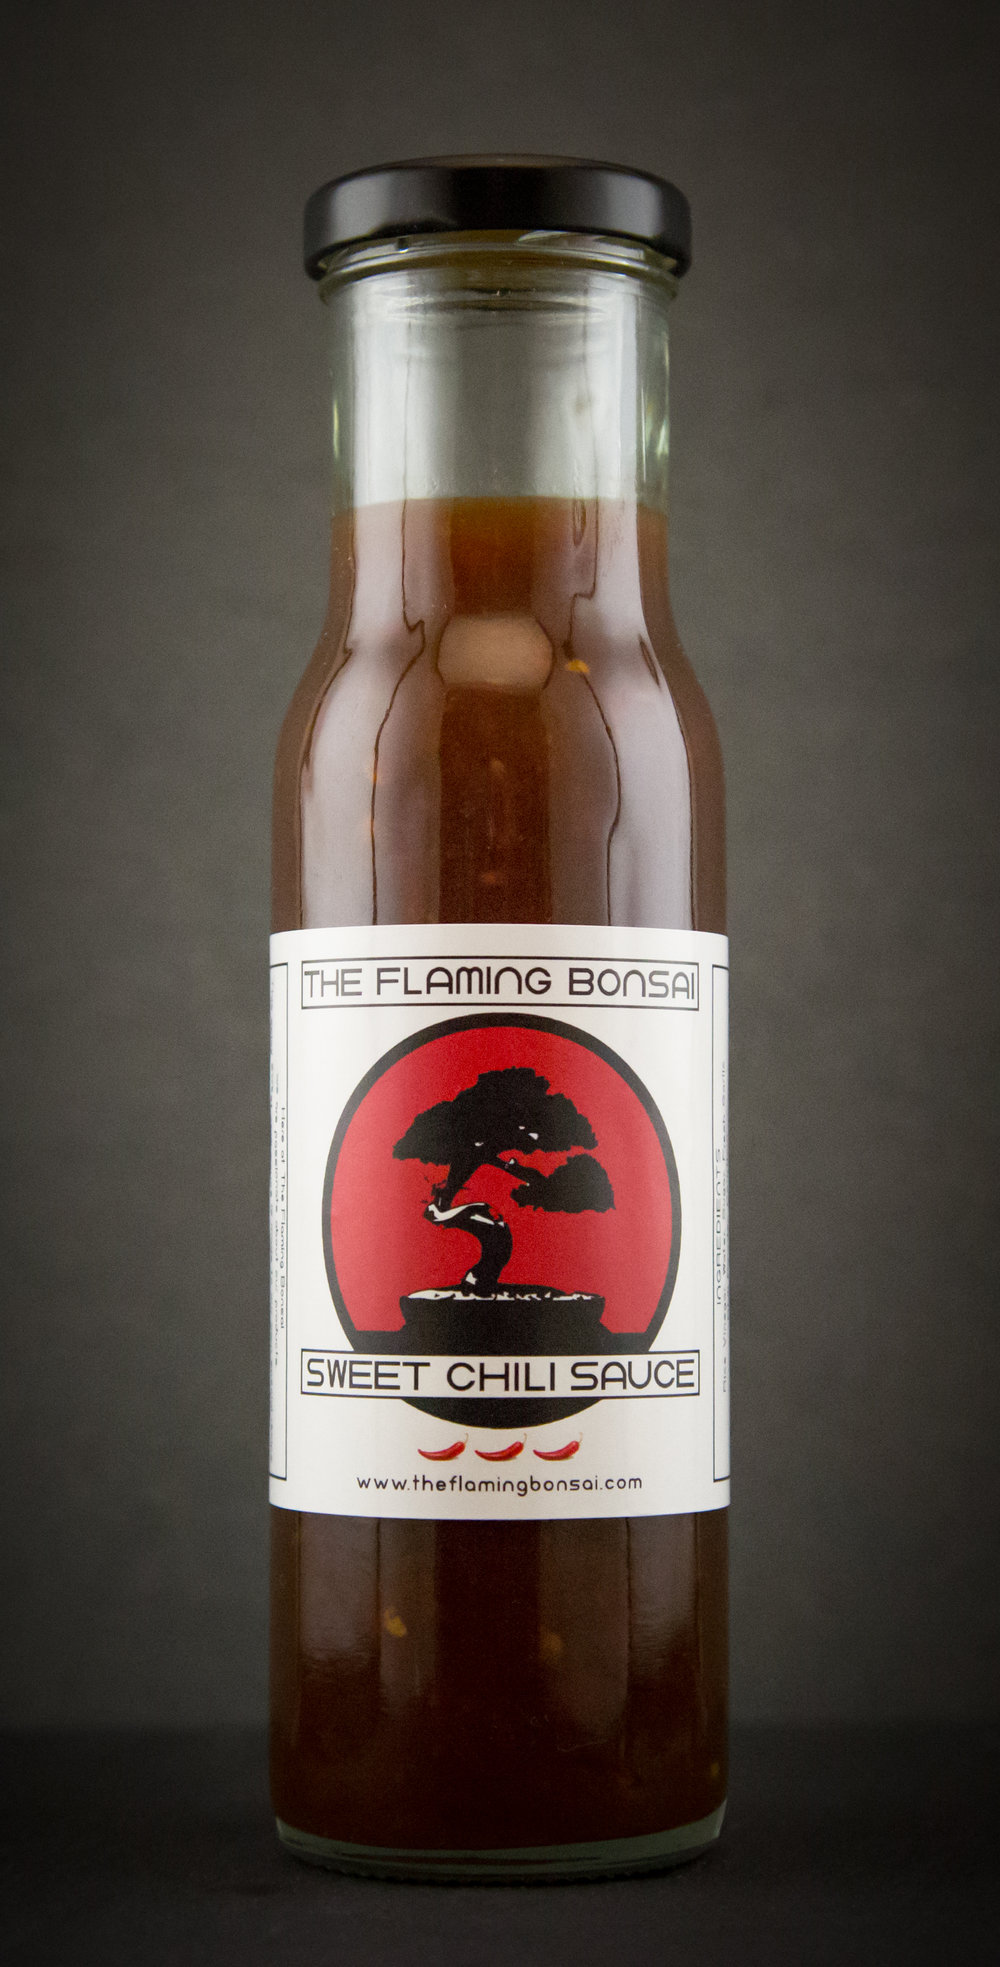 Flaming Bonsai Sweet Chili Sauce